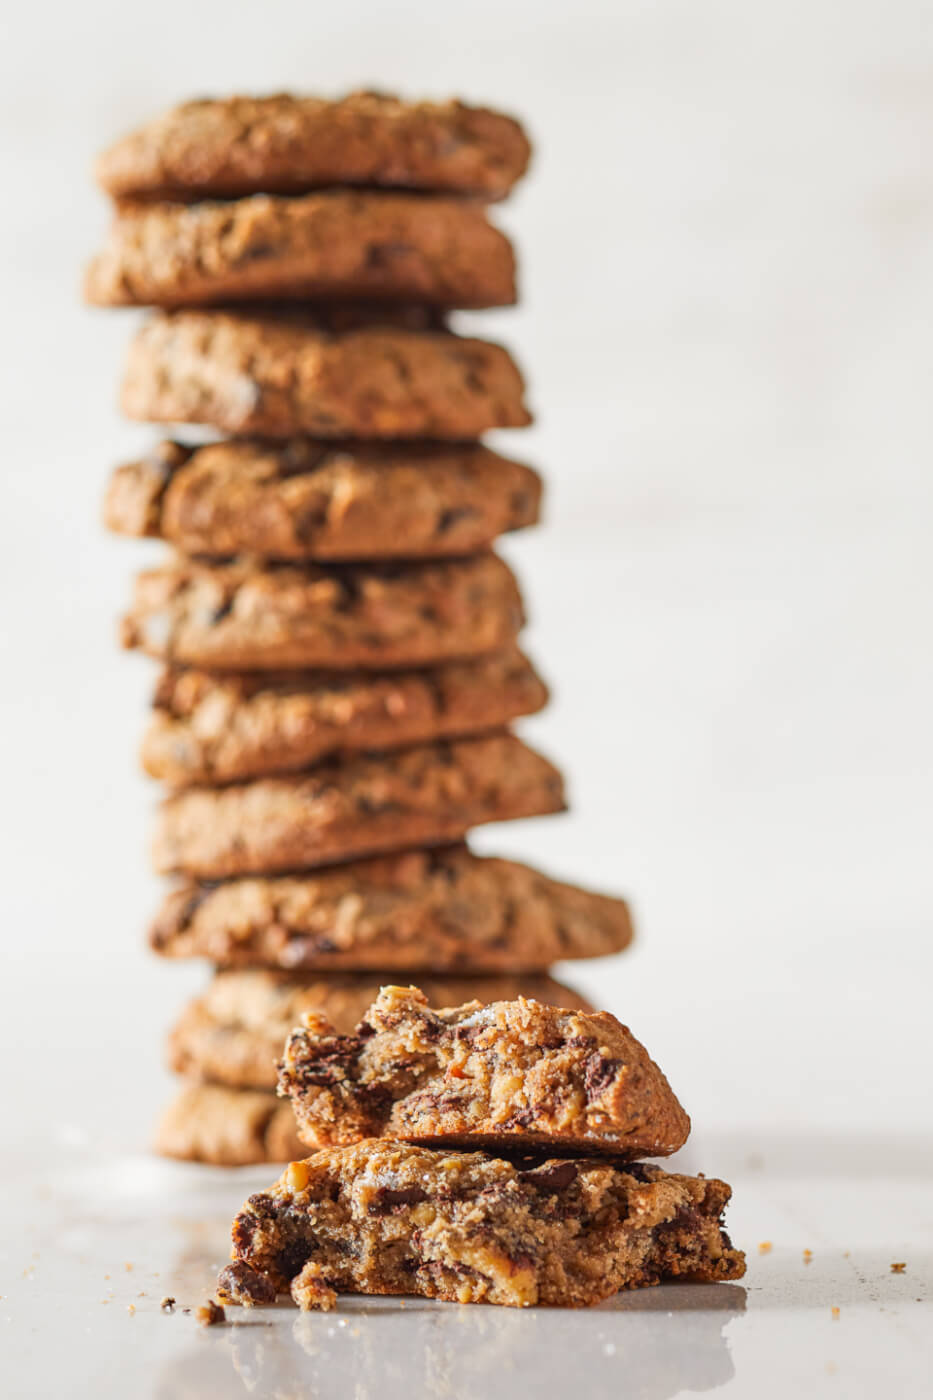 A large stack of Bristol Farms famous The Cookie are out of focus in the background. The foreground sits The Cookie broken in half to show off the chocolate chunks and toasted walnuts.